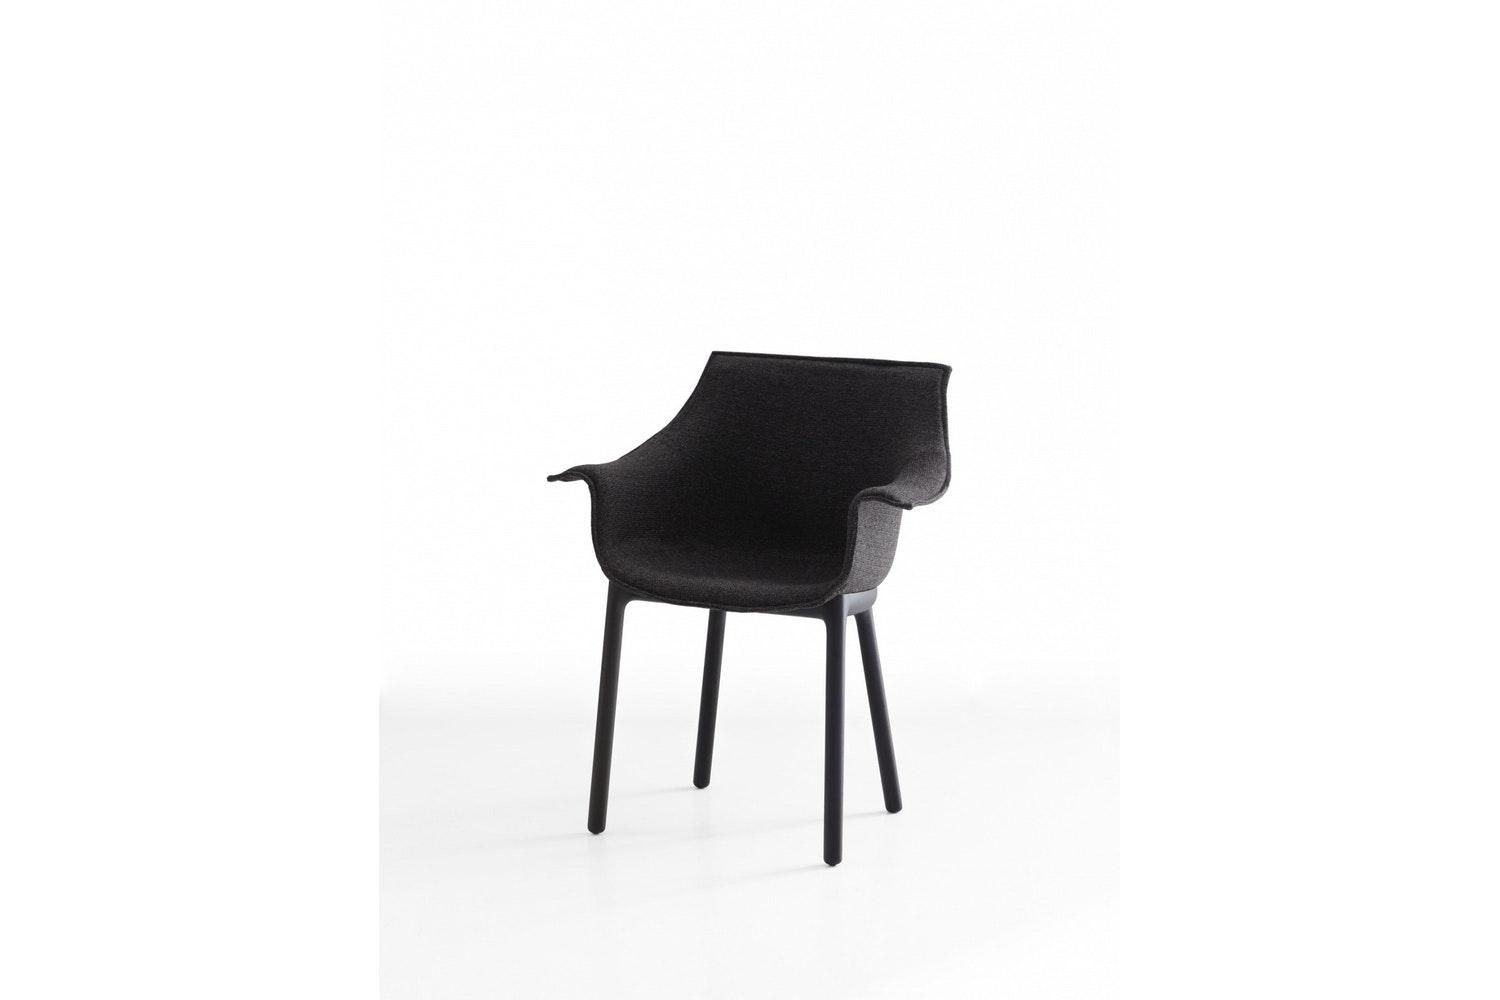 Draped Chair by Front for Porro